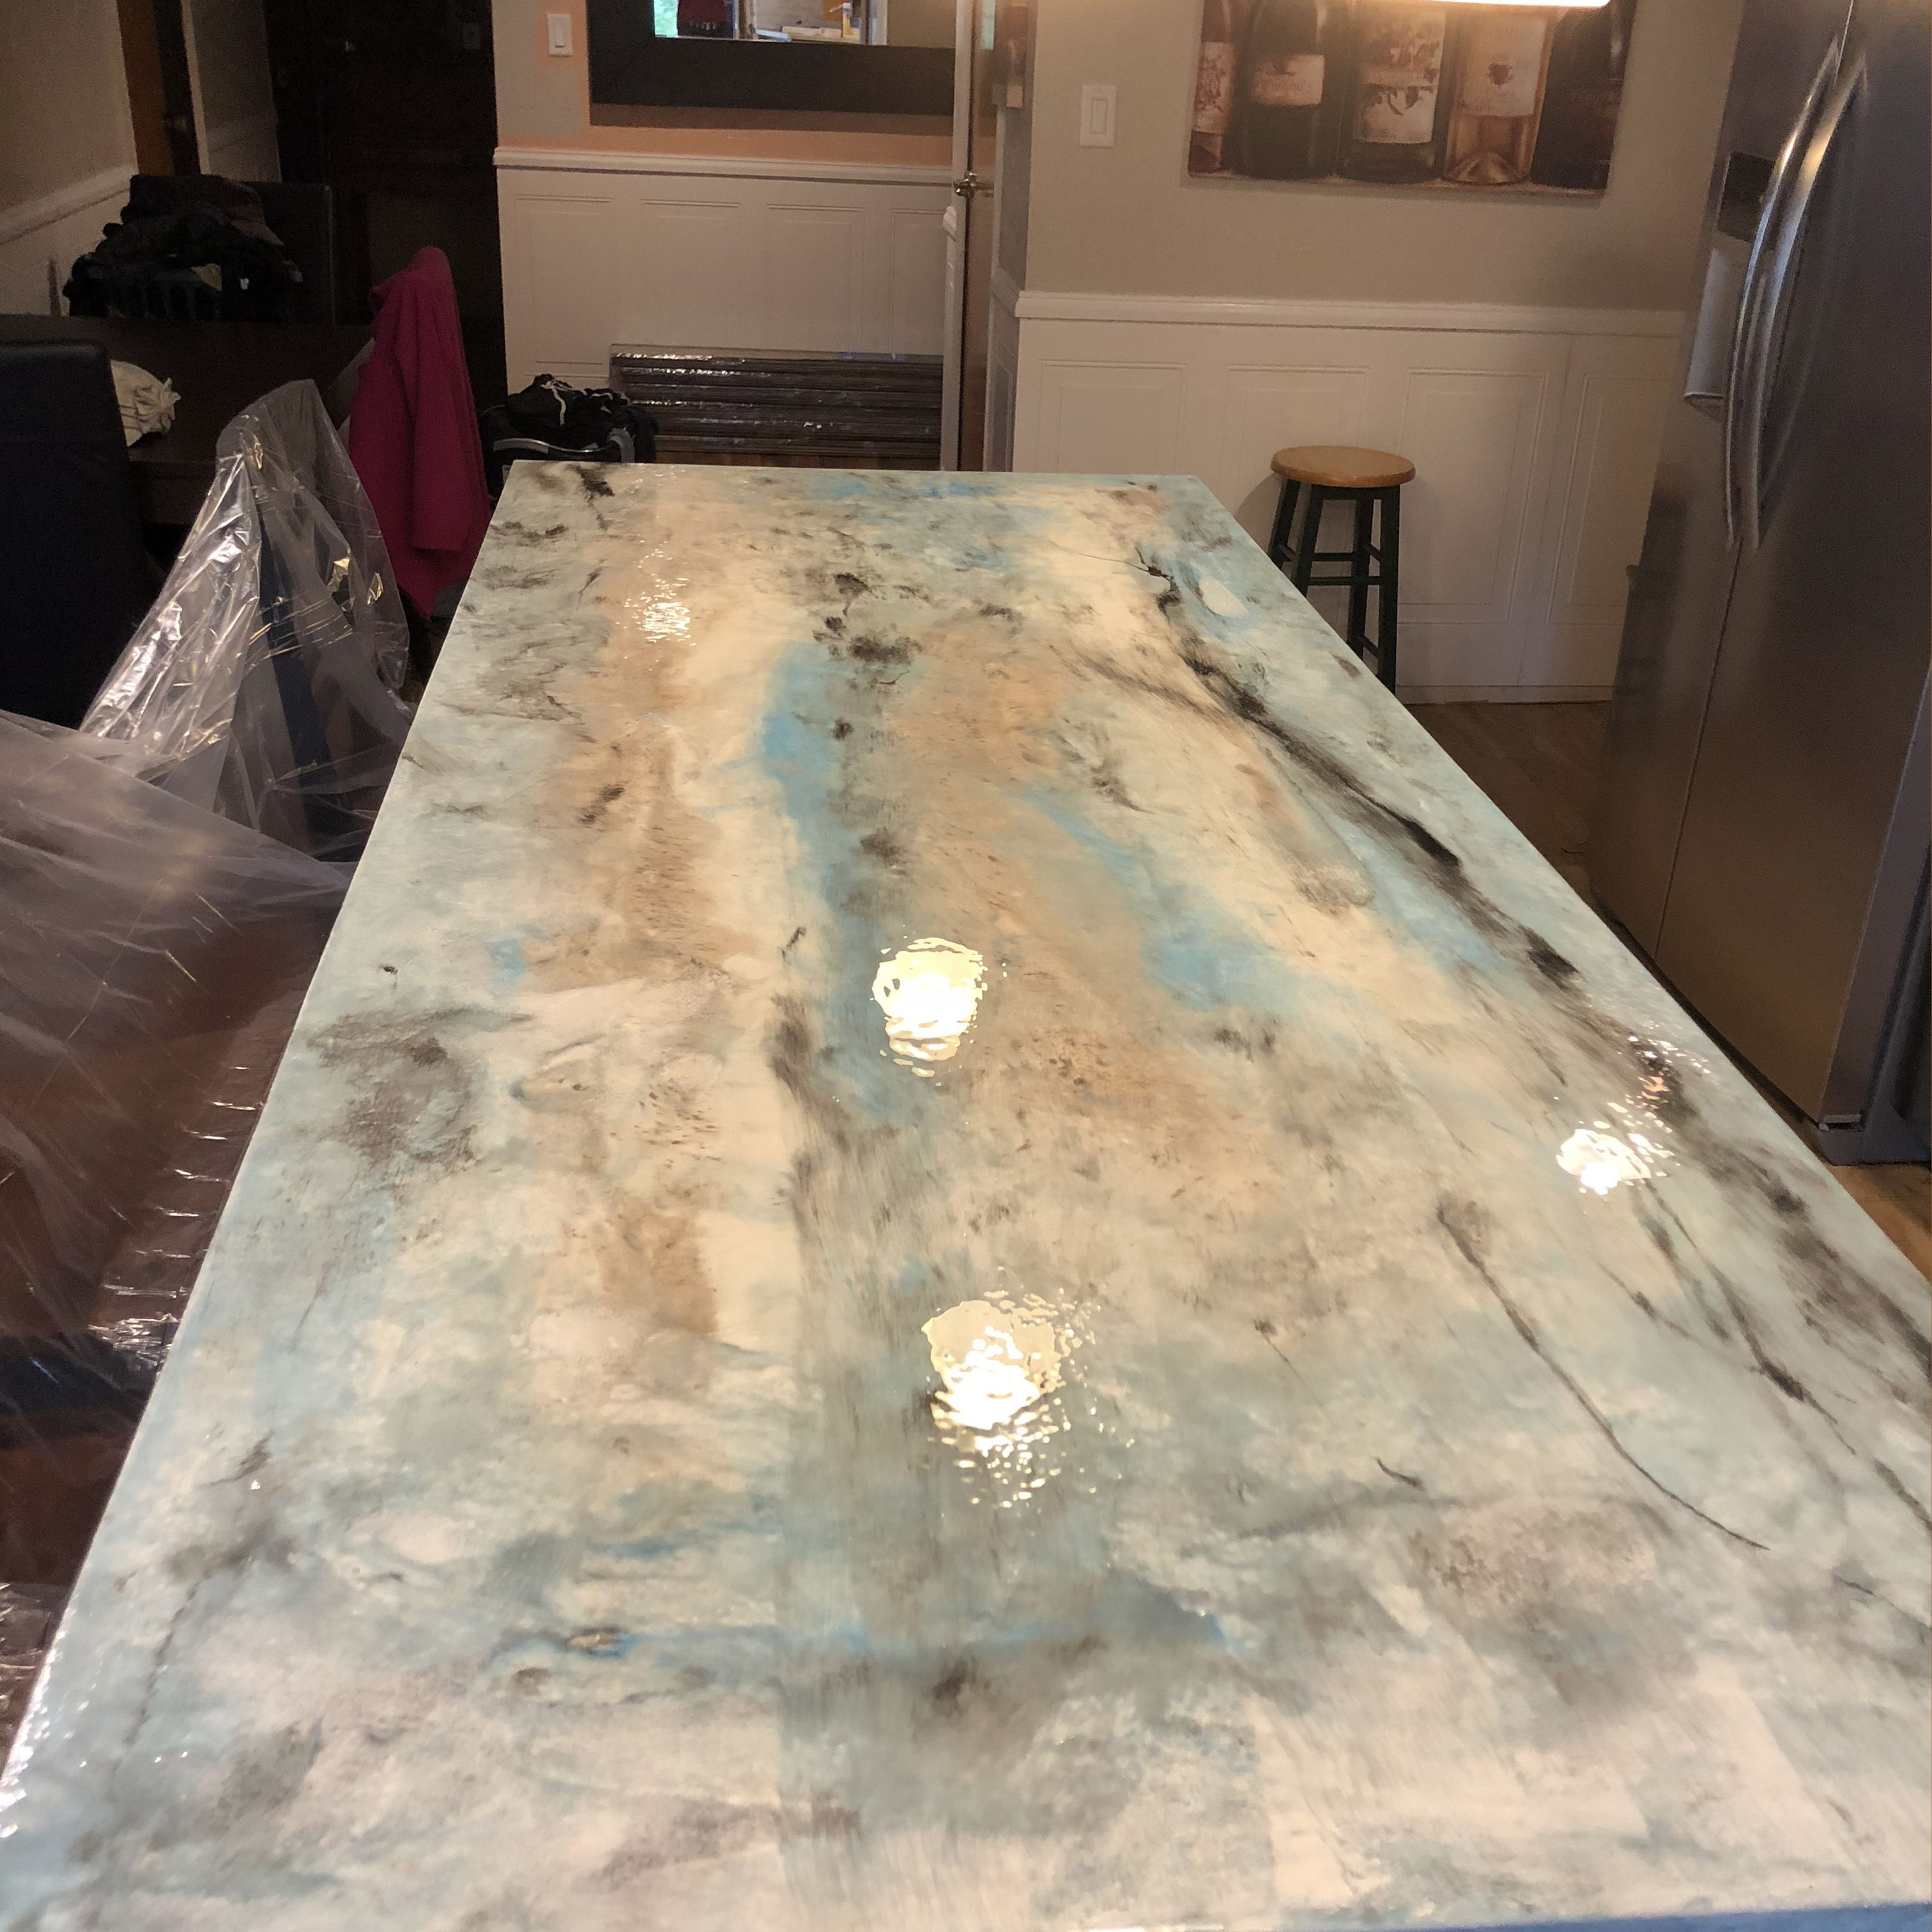 Metallic Epoxy Countertop Kit With